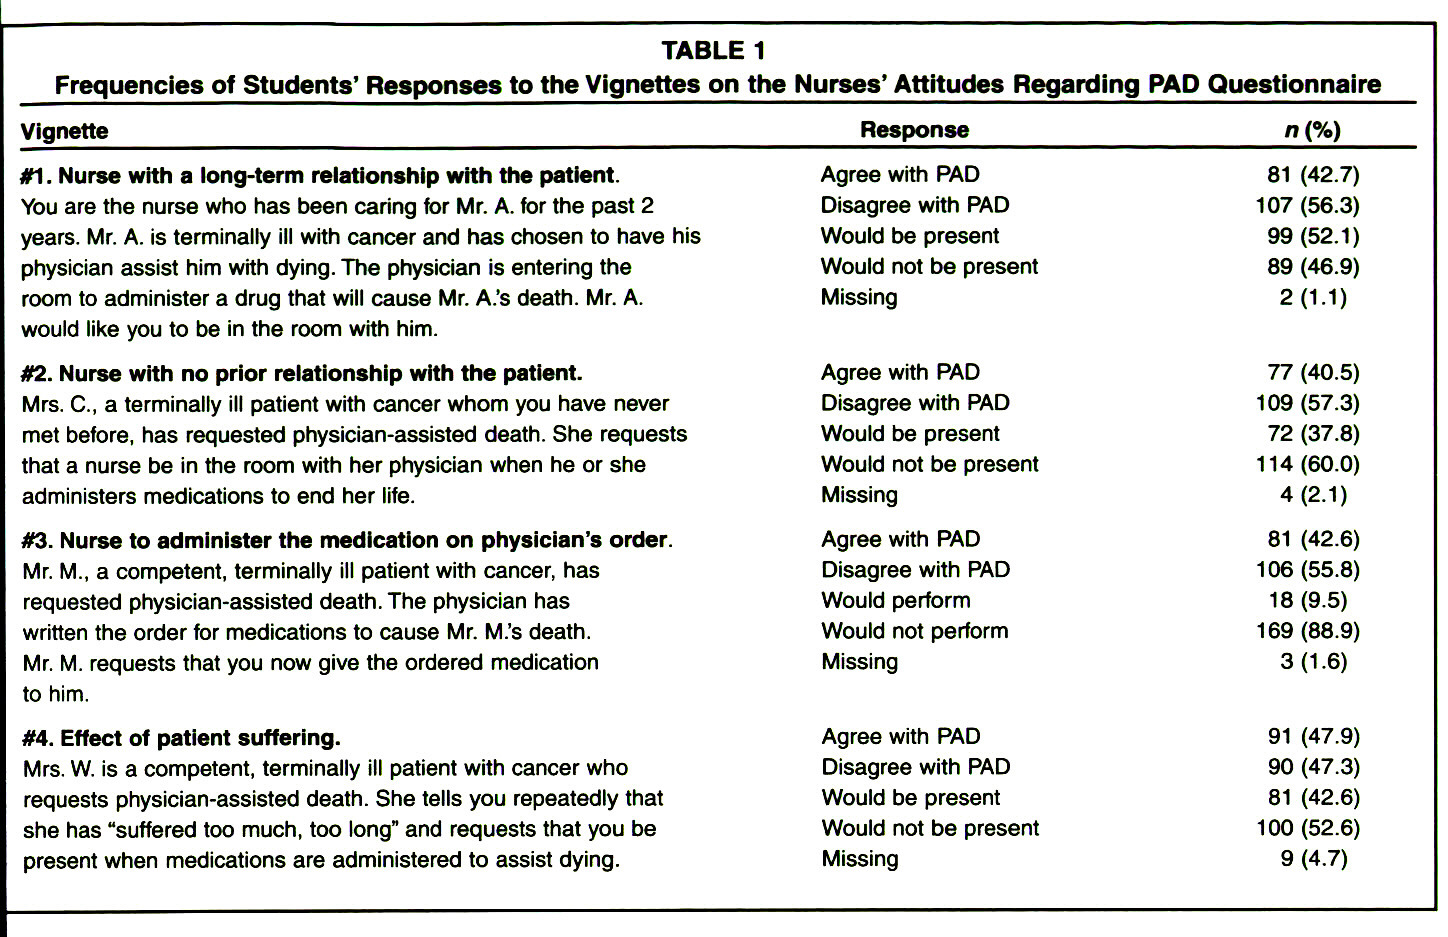 TABLE 1Frequencies of Students' Responses to the Vignettes on the Nurses' Attitudes Regarding PAD Questionnaire